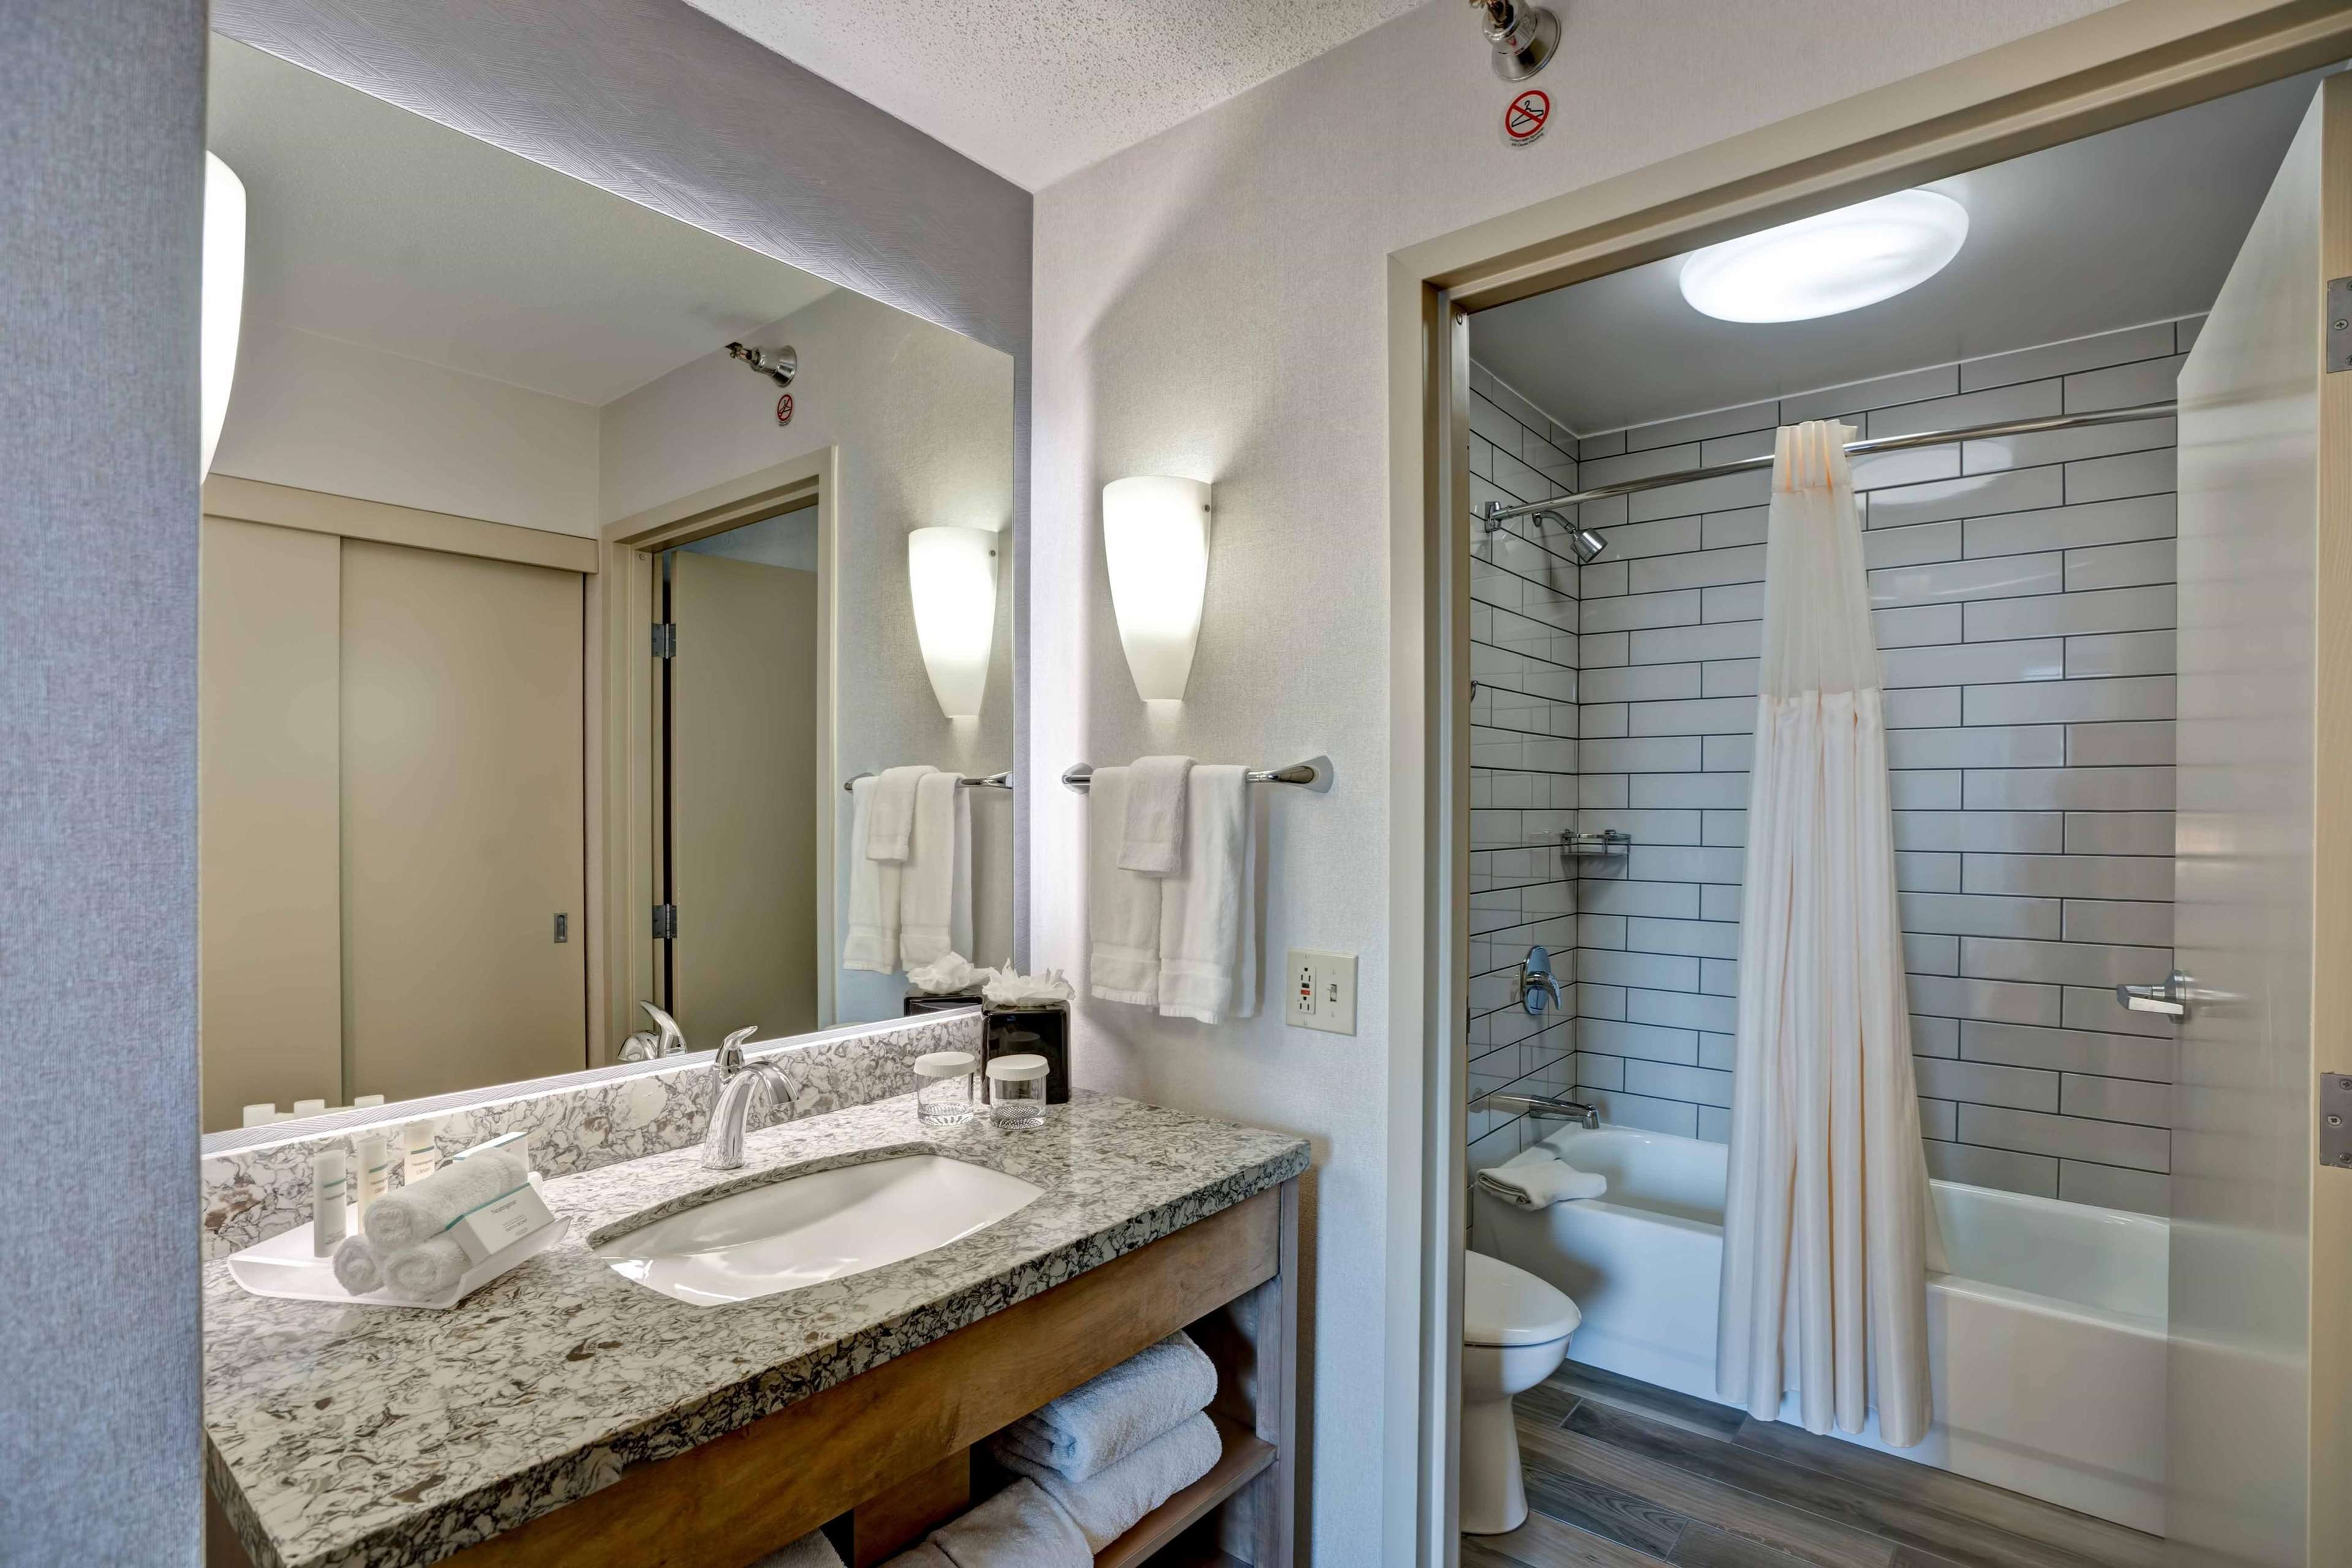 Homewood Suites by Hilton Chicago-Downtown image 41